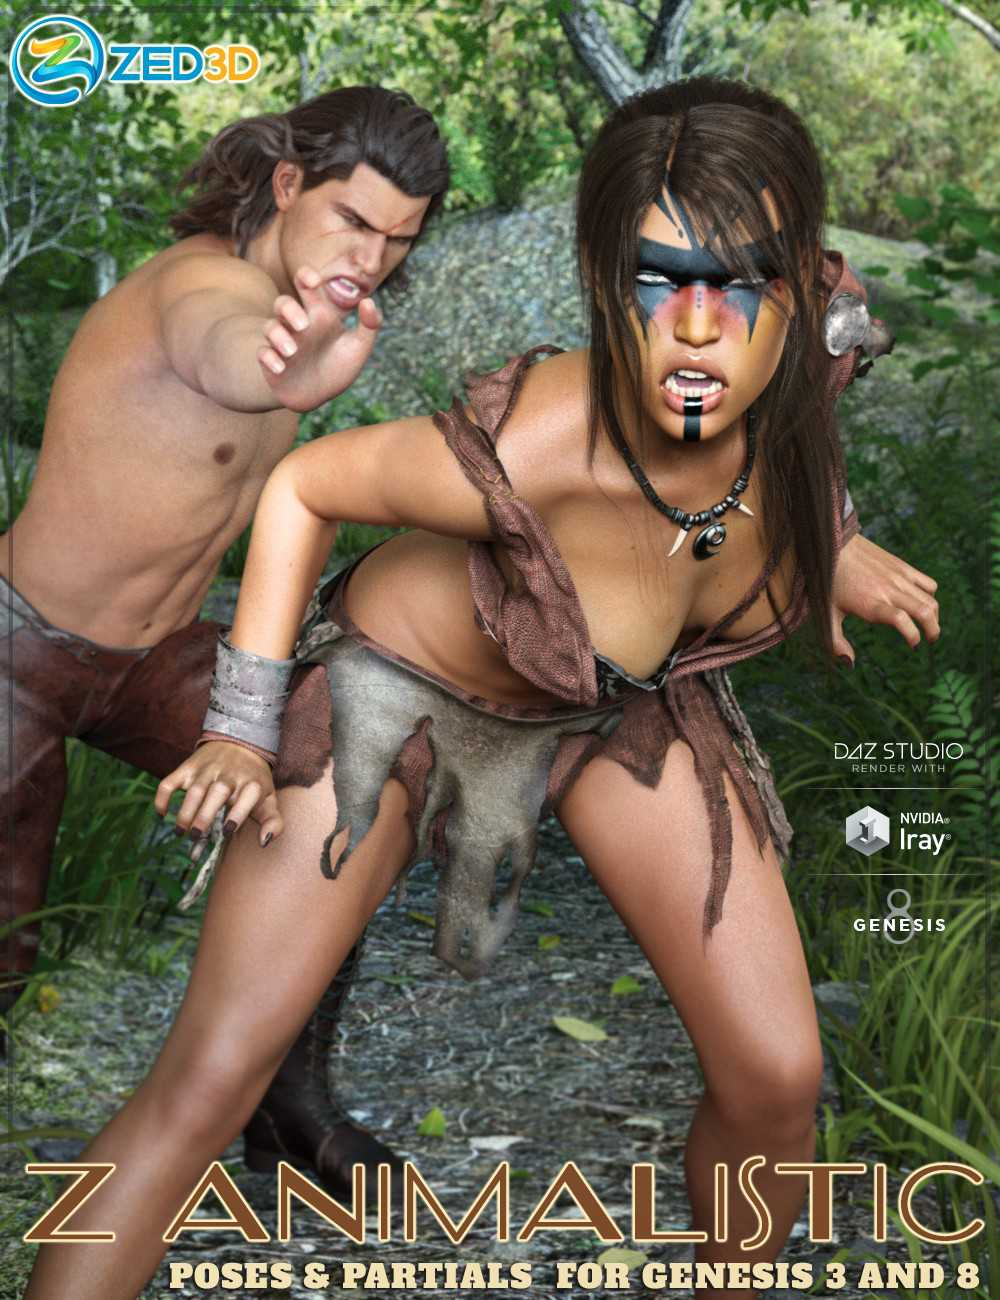 Z Animalistic Poses and Partials for Genesis 3 and 8